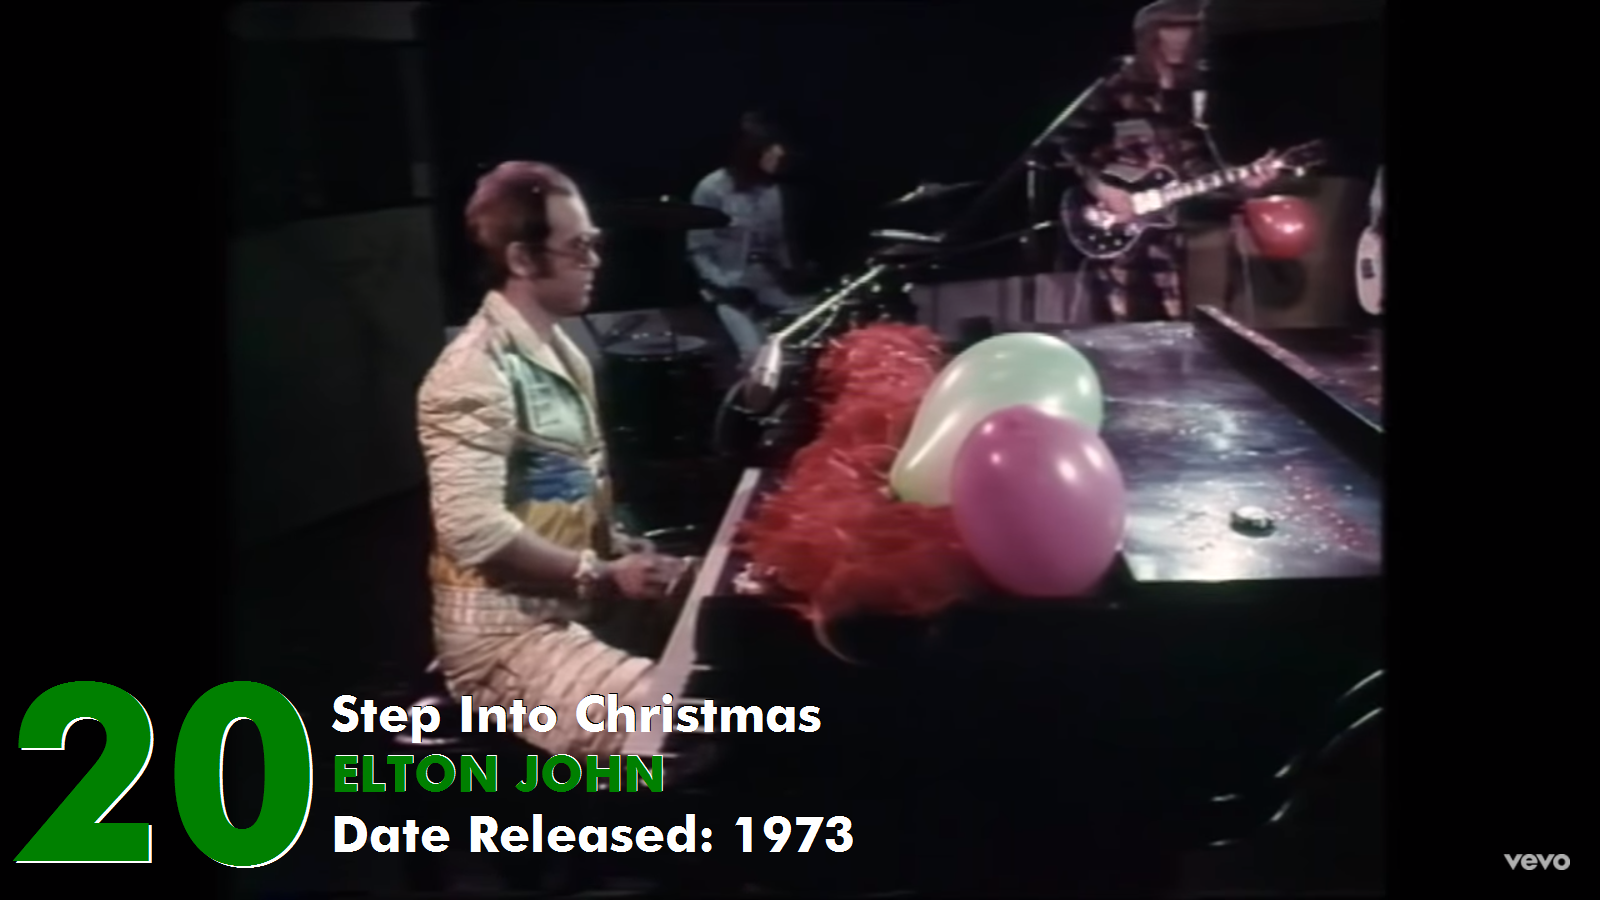 Elton John Christmas Song.A Pop Culture Addict S Guide To Life 20 Top 25 Christmas